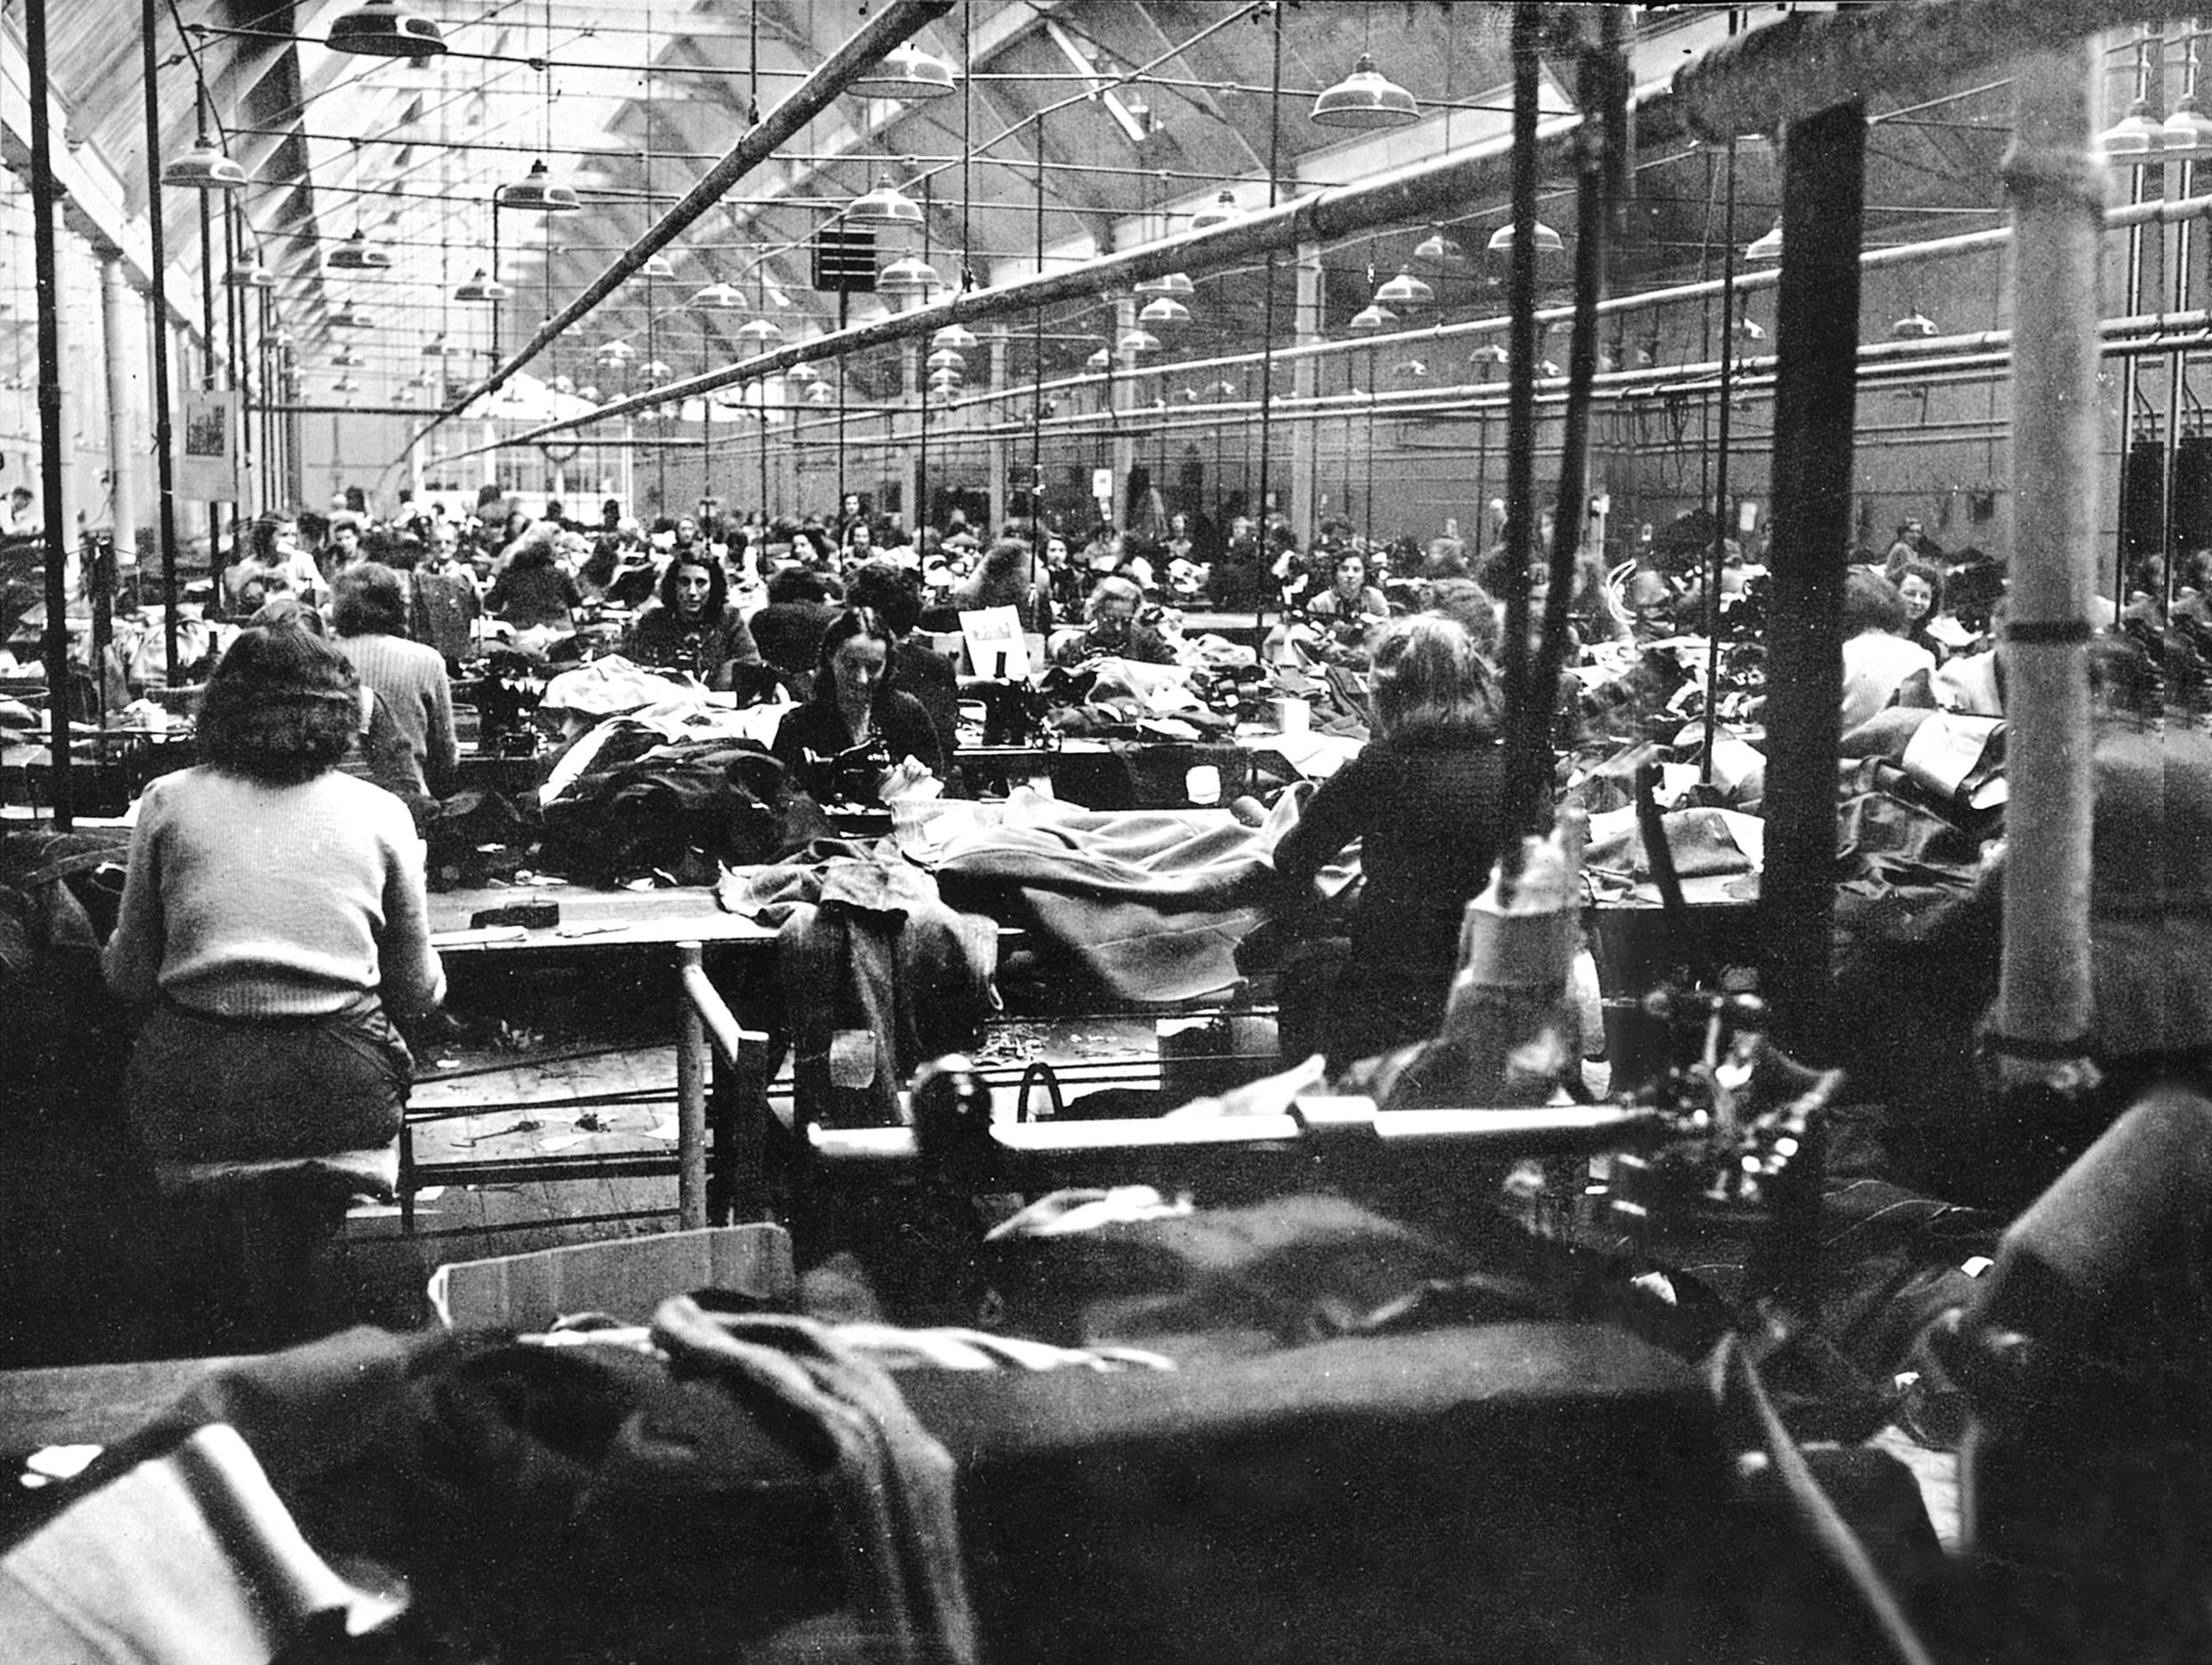 Final Glimpse Of Historic Tait Clothing Factory In Limerick